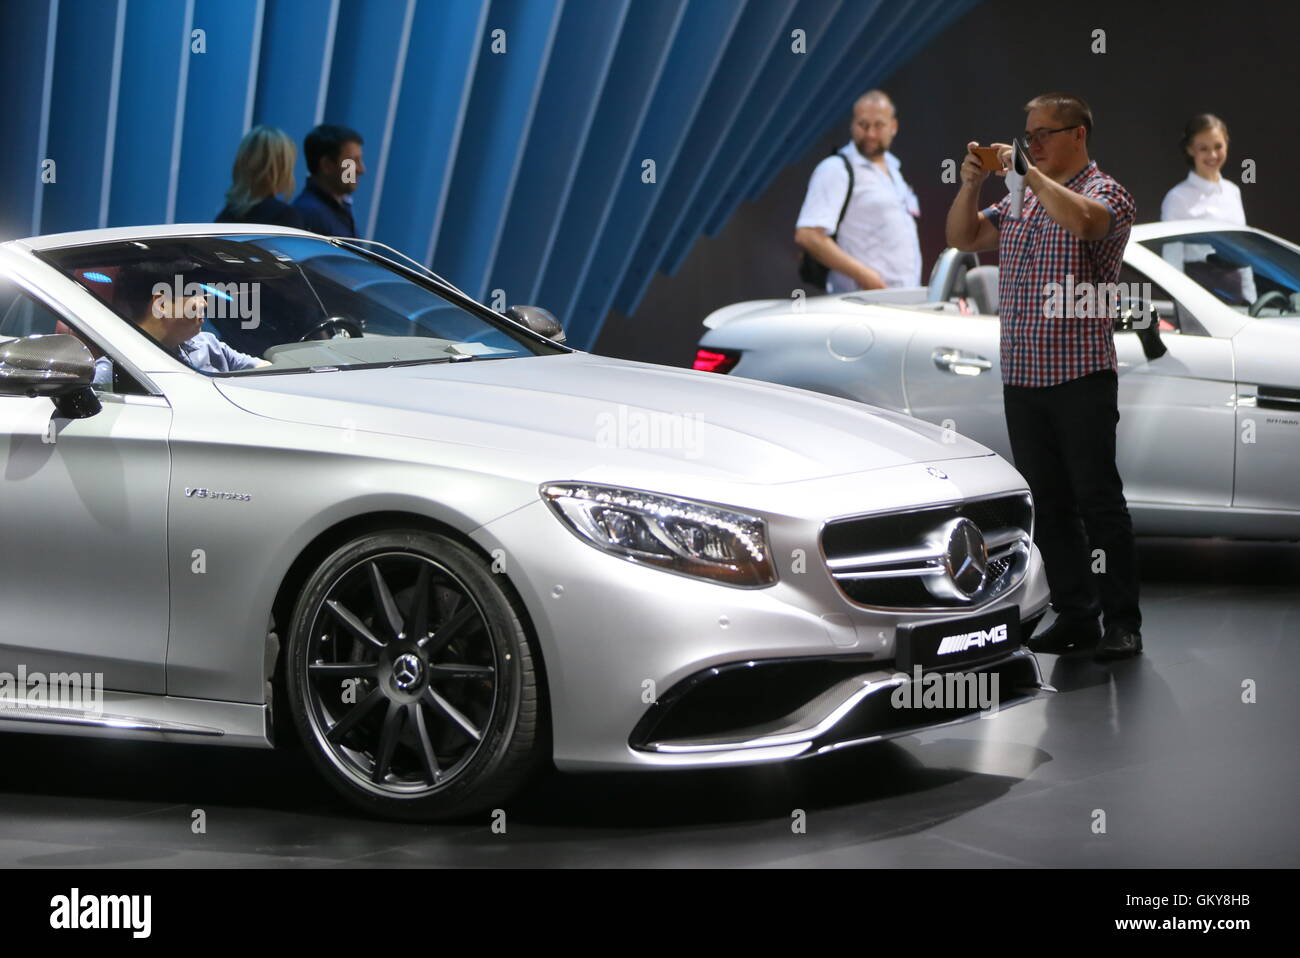 Moscow, Russia. 24th Aug, 2016. A Mercedes-Benz S 63 Cabriolet car on display at the 2016 Moscow International Automobile - Stock Image